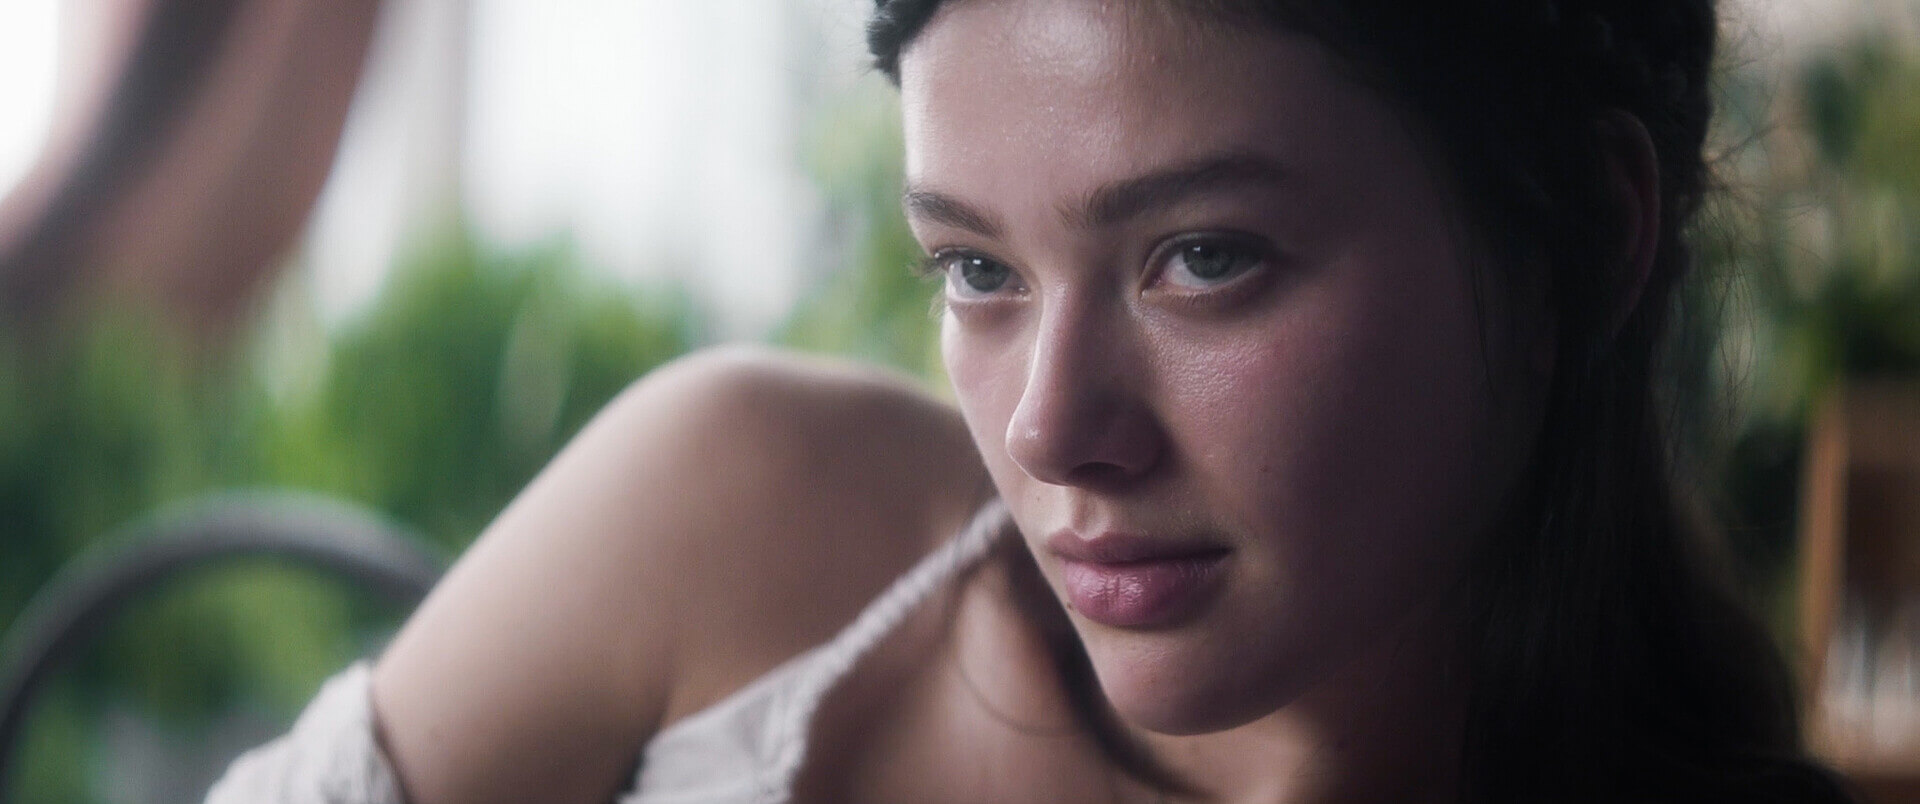 Image of Jessica Alexander in Glasshouse